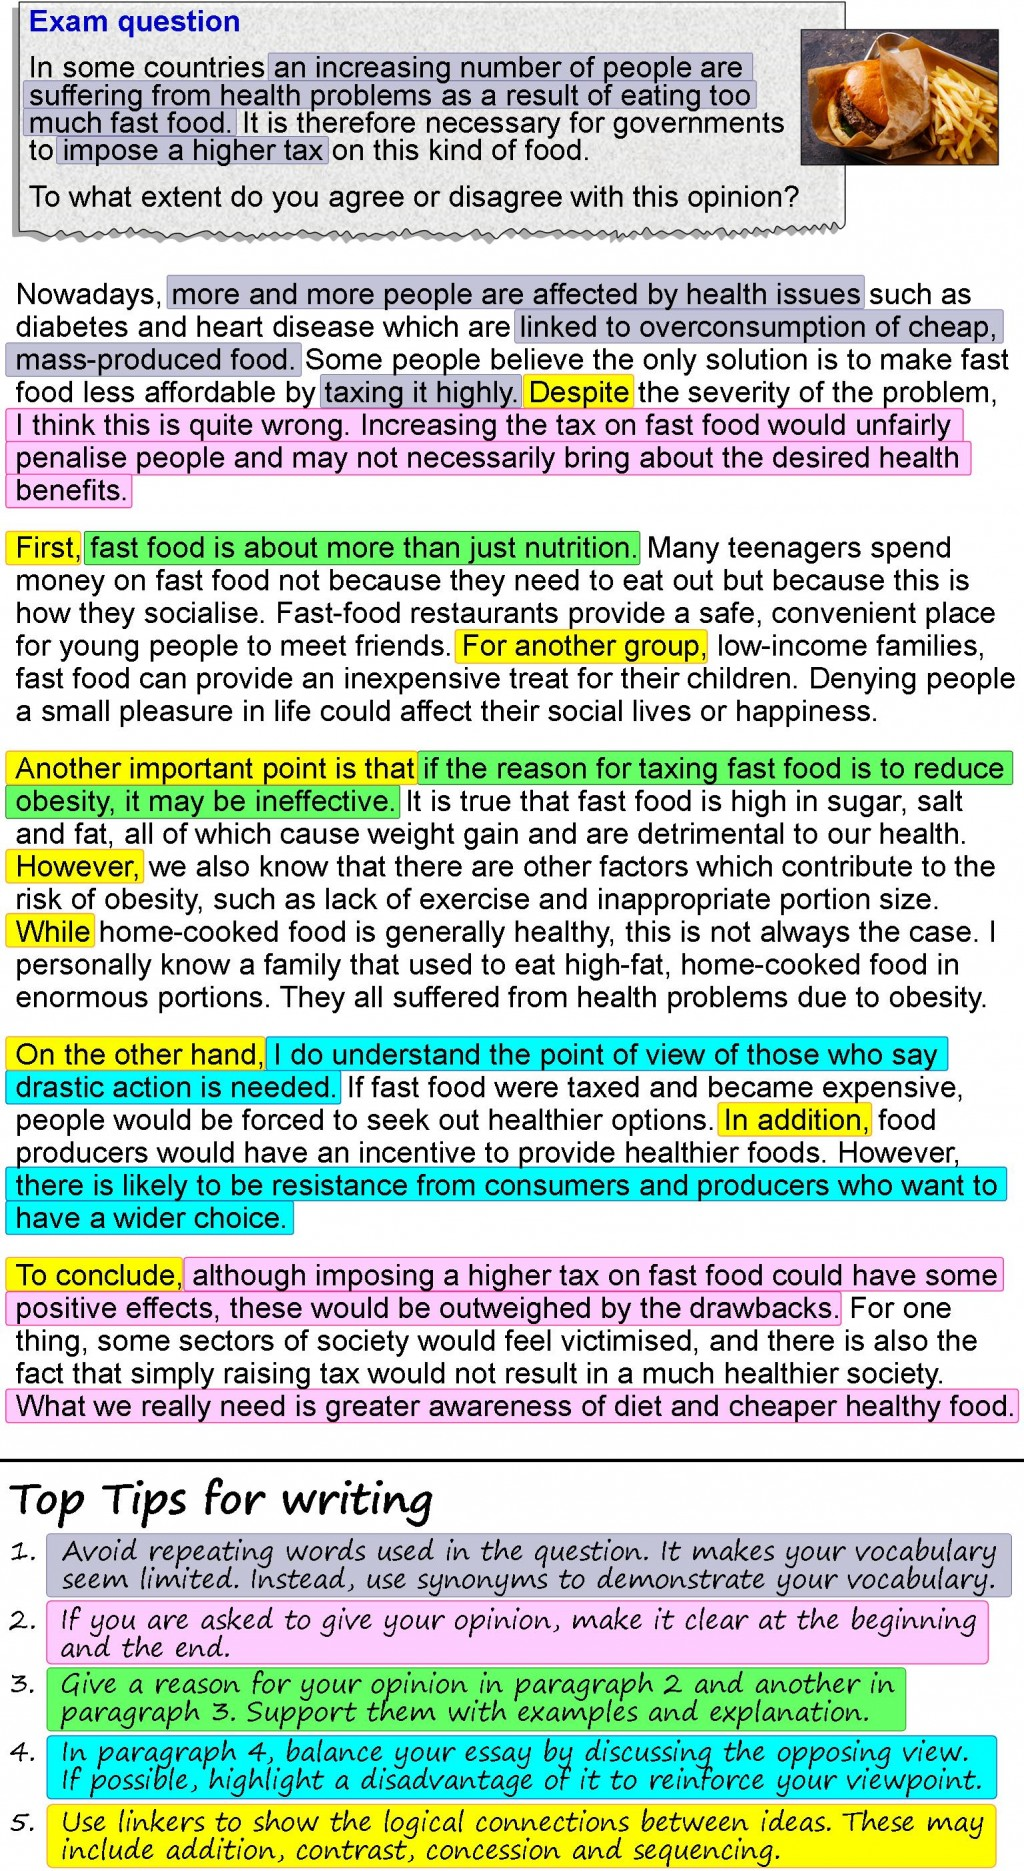 001 Opinion Essay About Fast Food Example An 4 Unbelievable British Council Is A Good Alternative To Cooking For Yourself Large